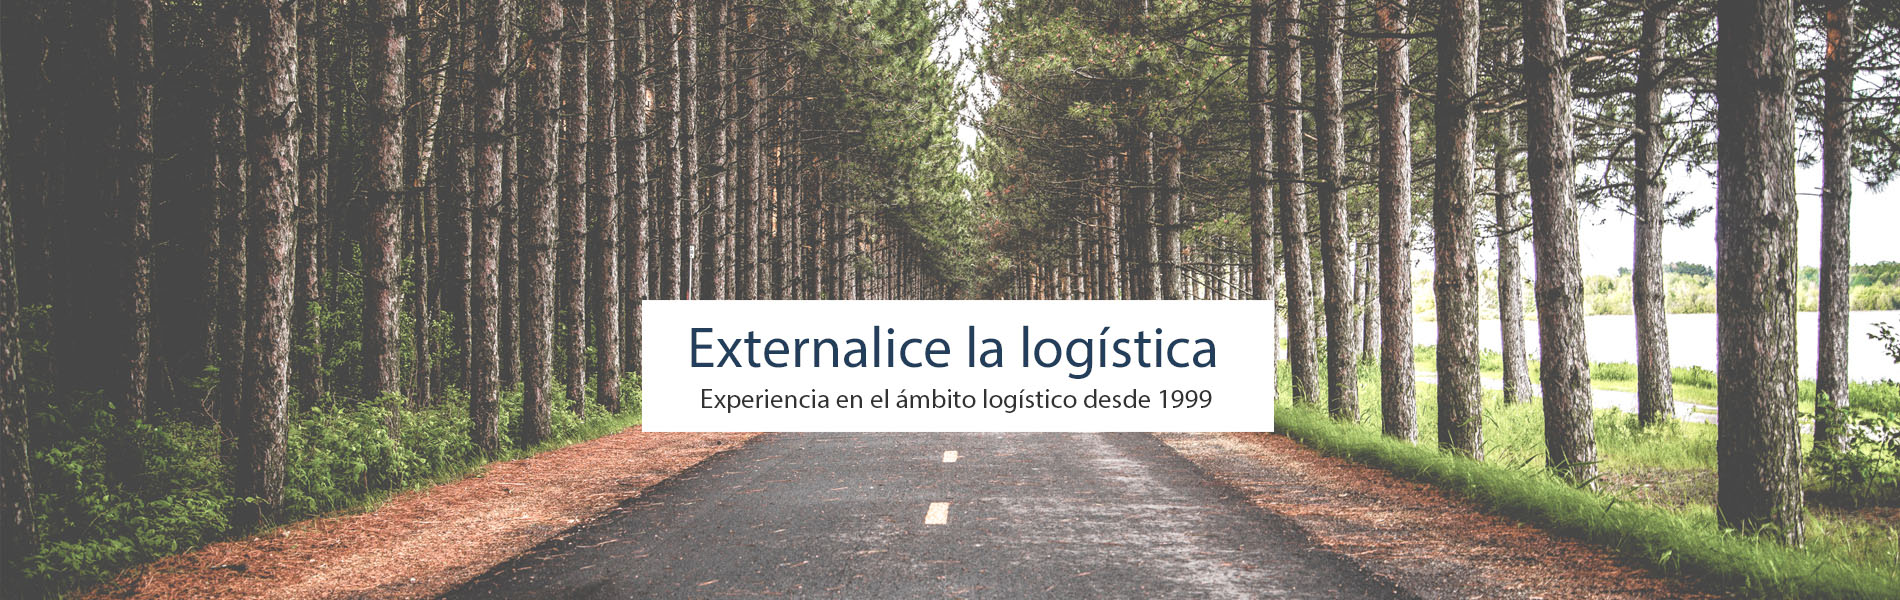 Logival externalice